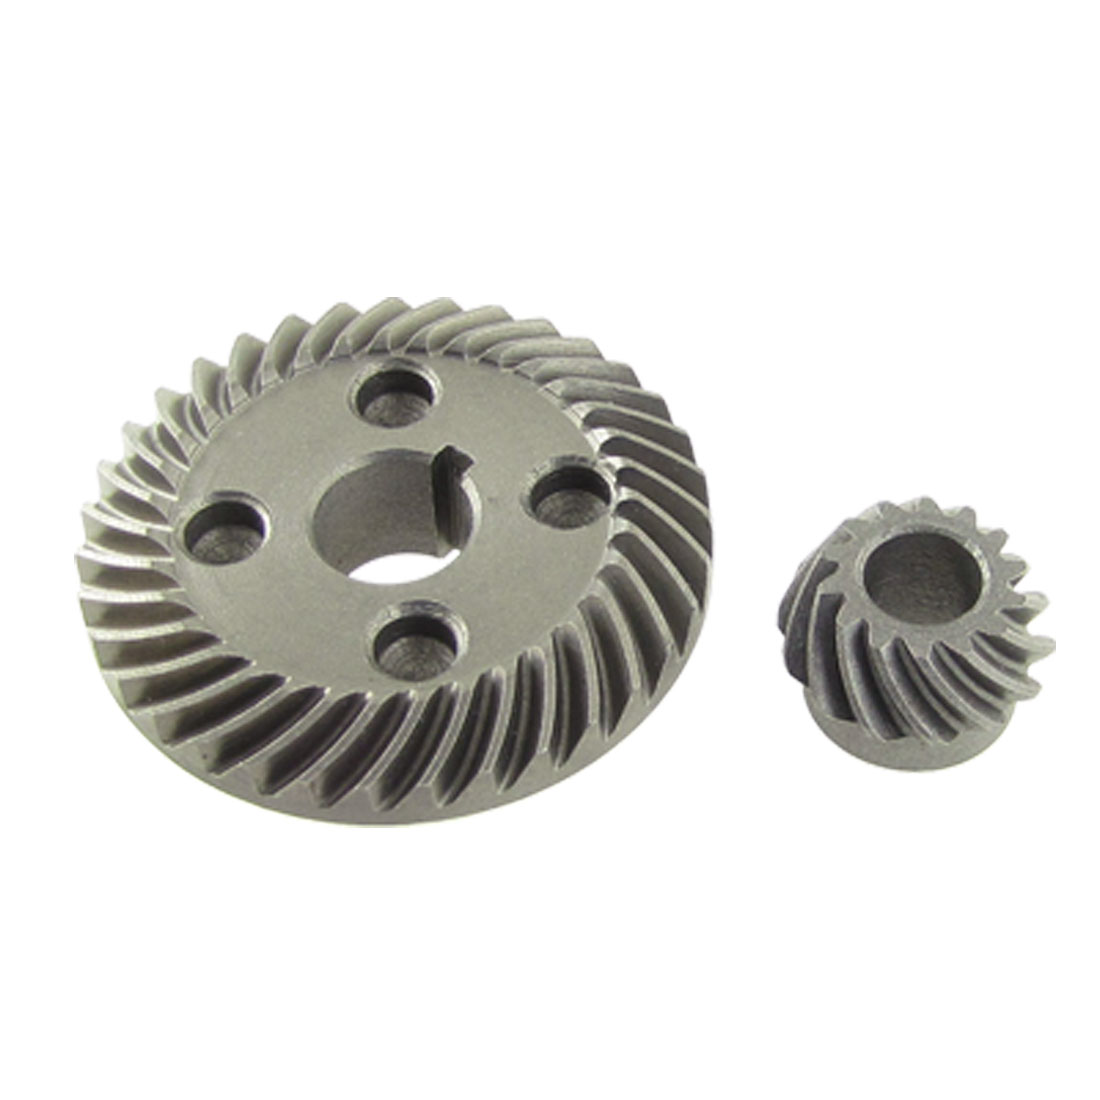 2 Pcs Angle Grinder Spiral Bevel Gear Set for Hitachi G10SF3